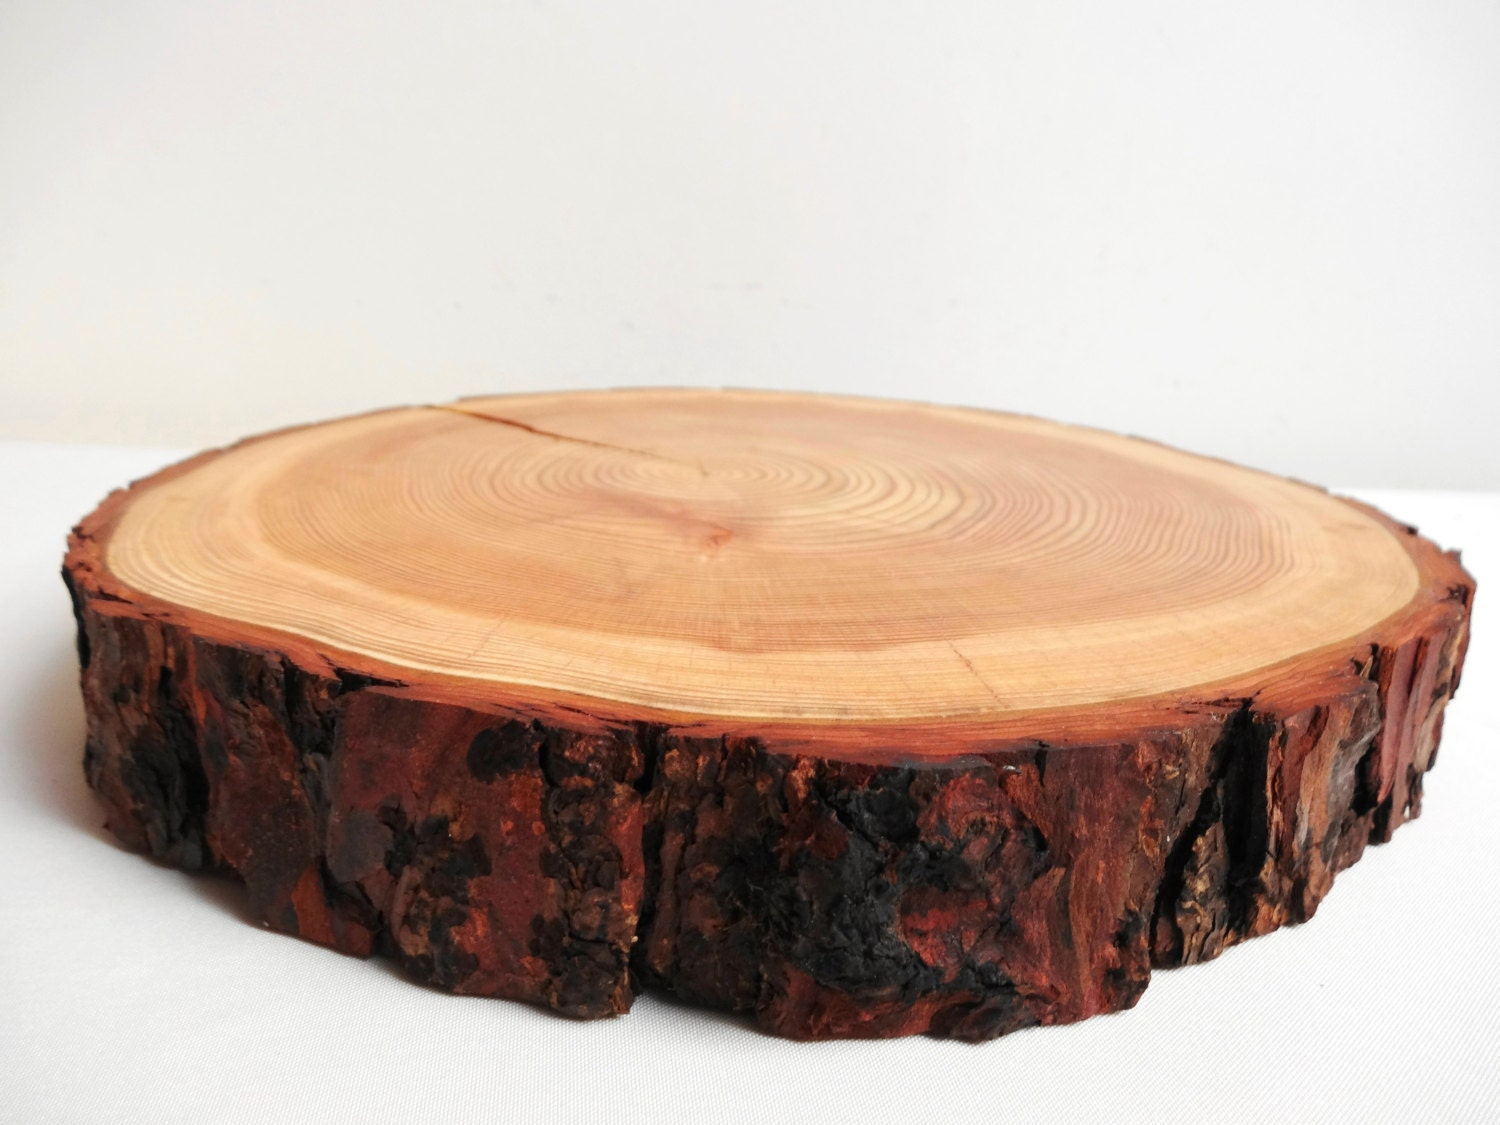 10 5 wood slab stump tree trunk slice cake stand for Wood trunk slices